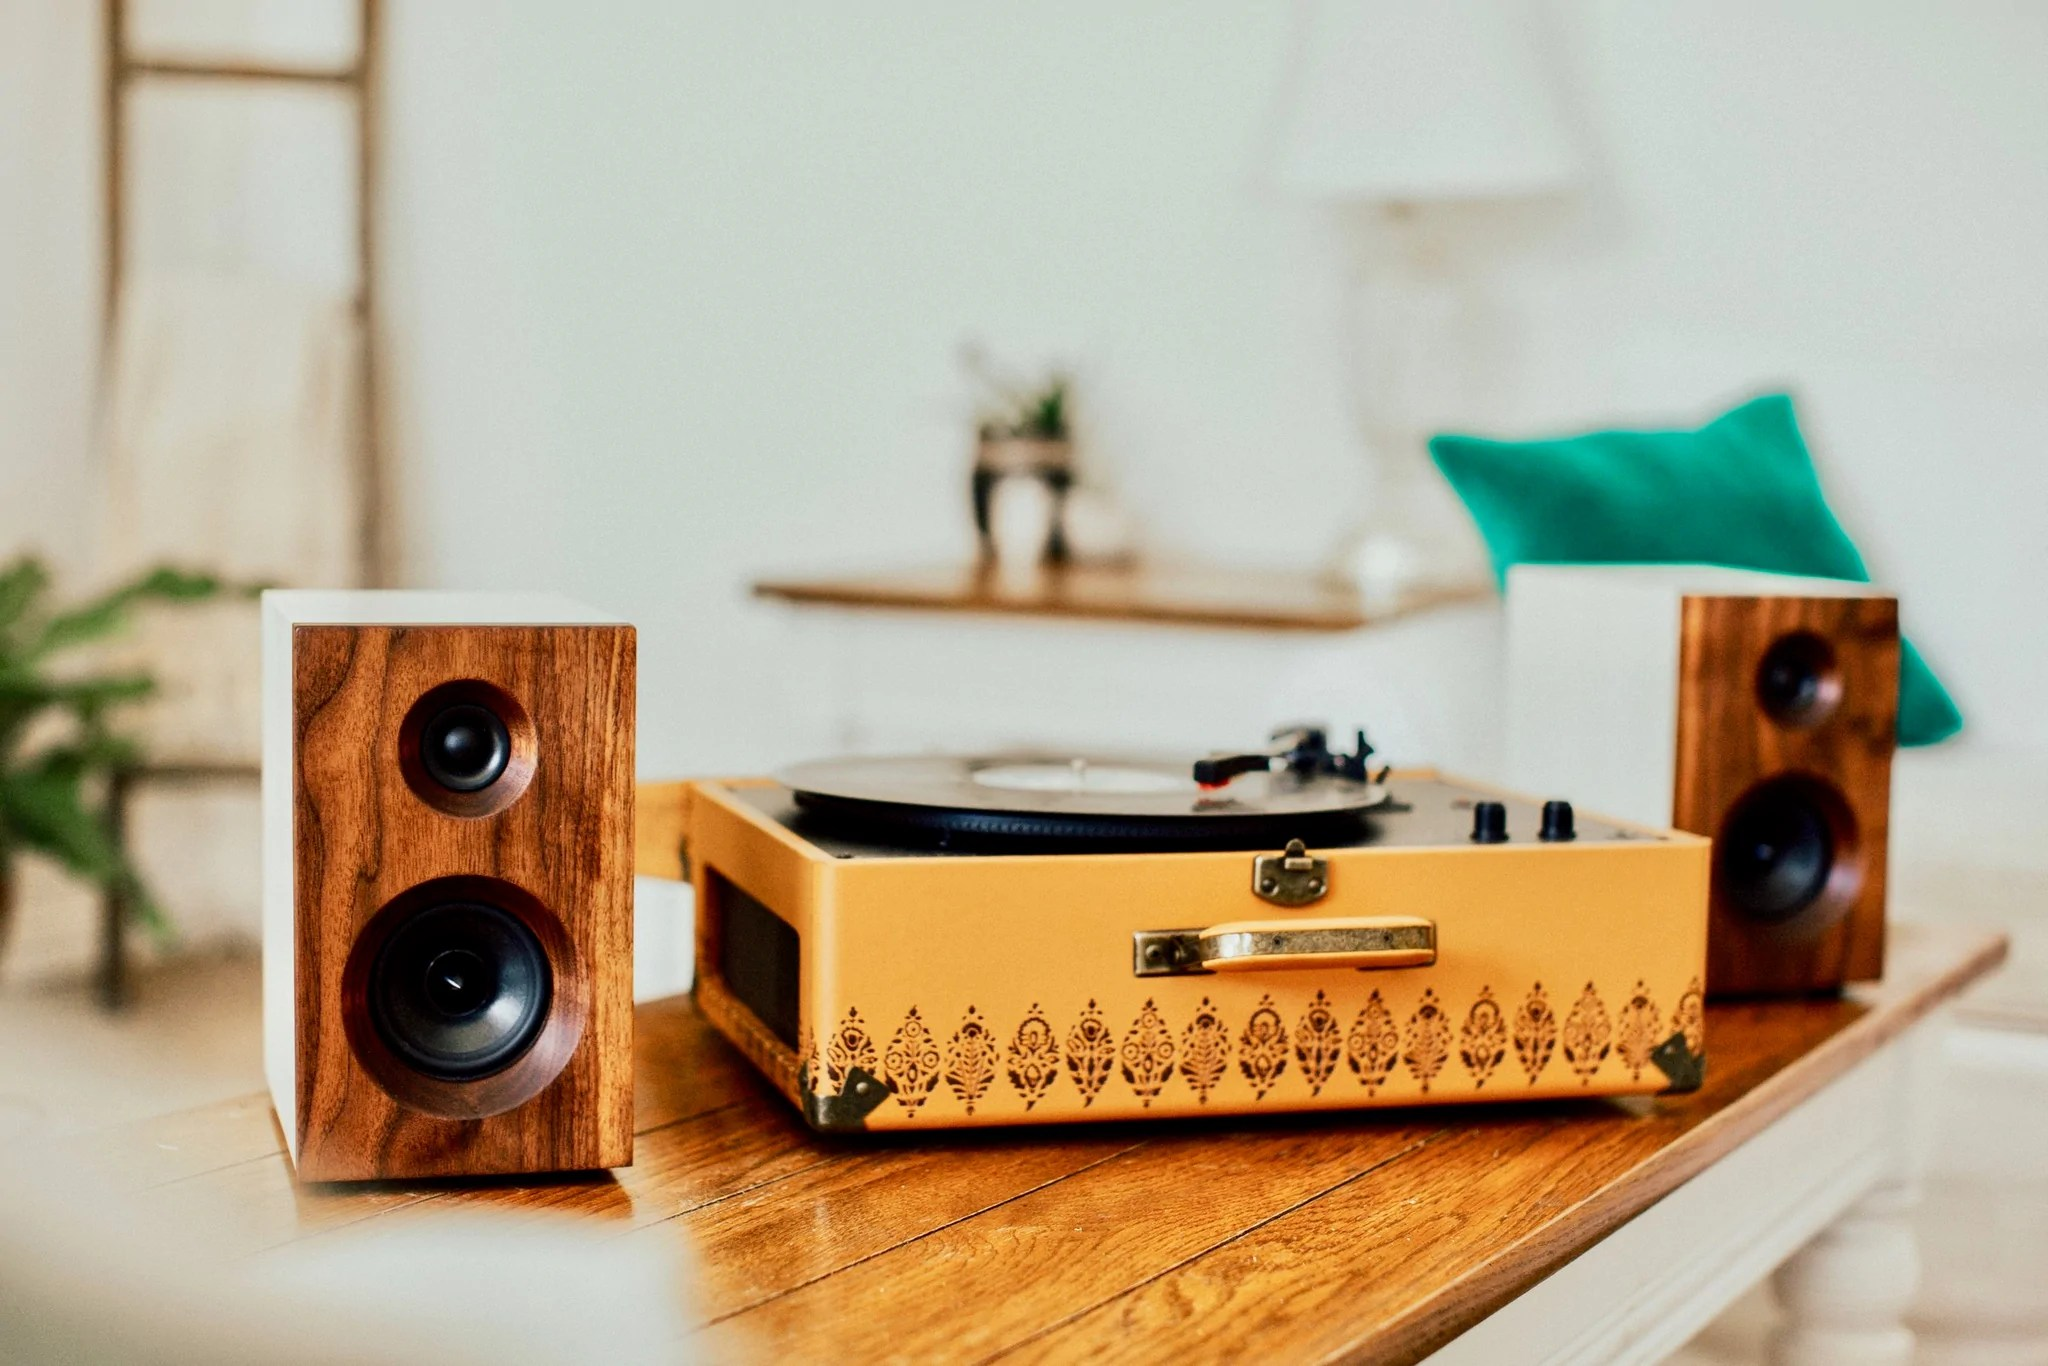 fremont bookshelf speaker diy build kit  [ 2048 x 1366 Pixel ]